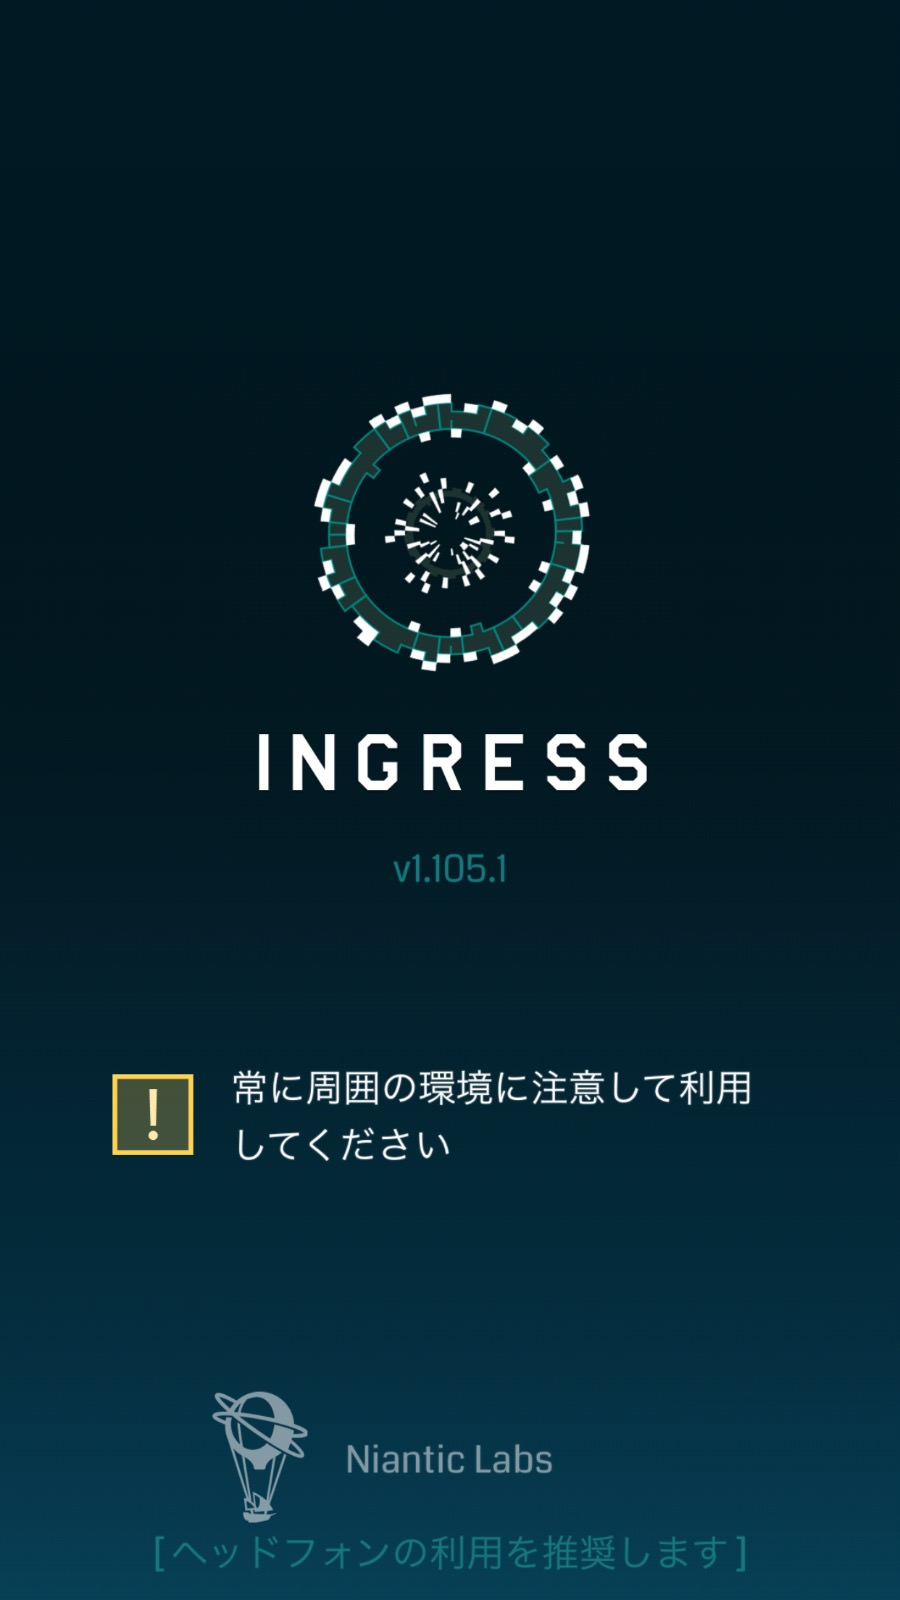 【Ingress】iOS版「Ingress 1.105.1」リリース